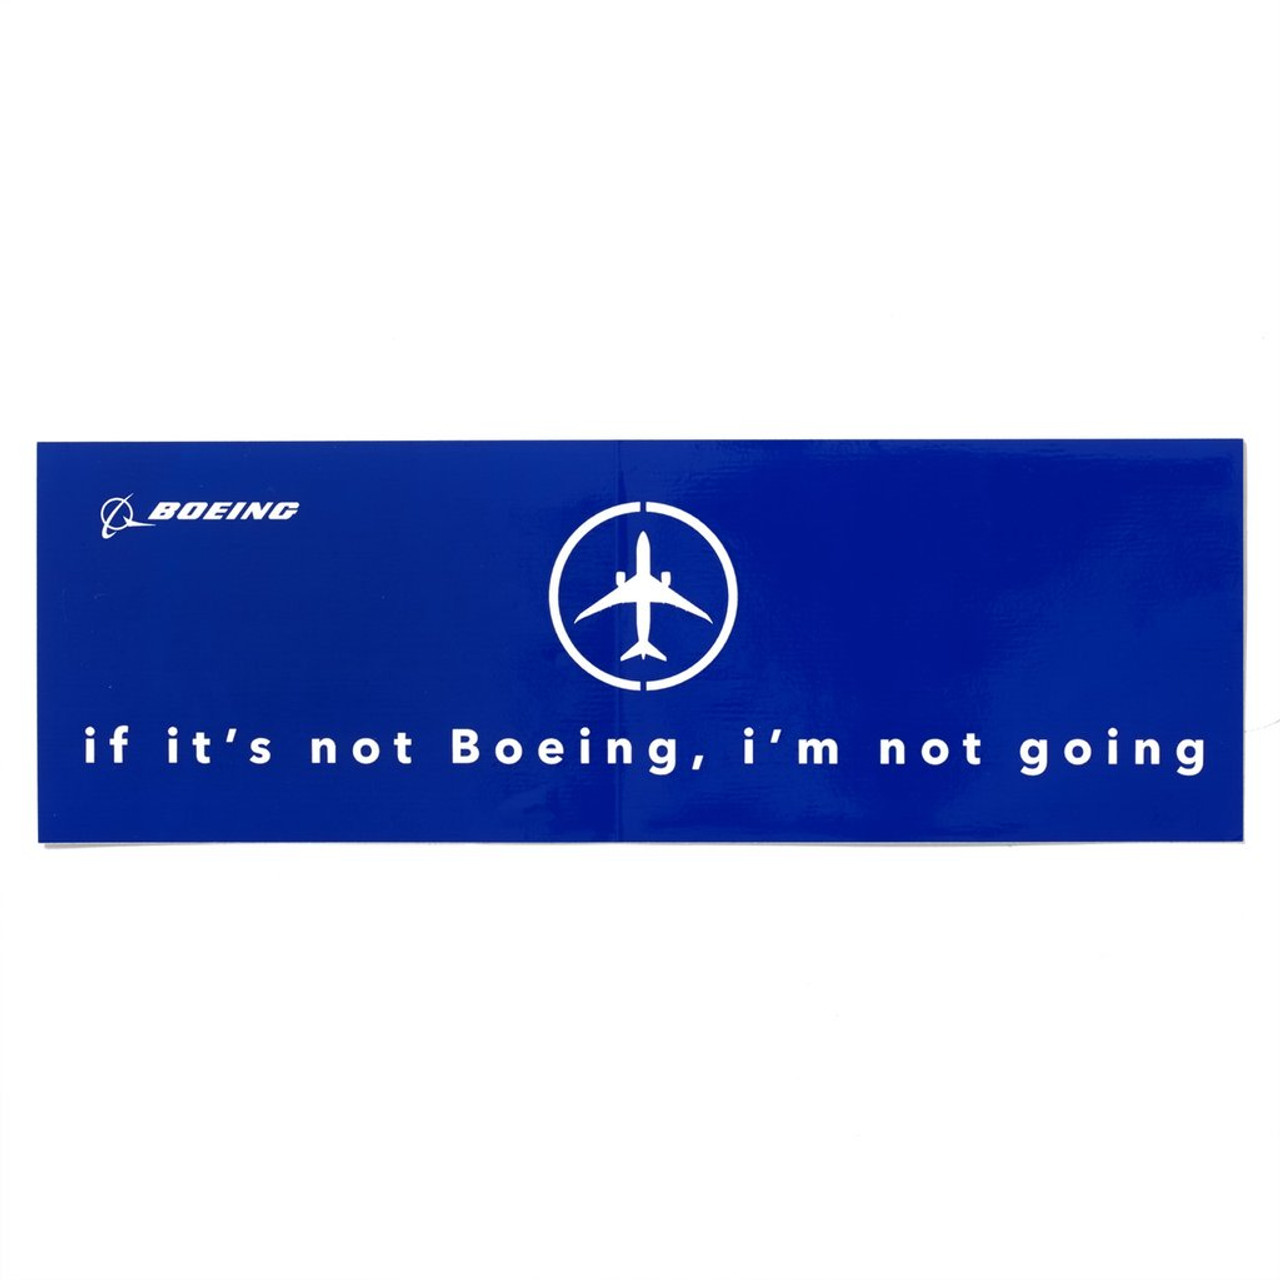 If It's Not Boeing, I'm not going